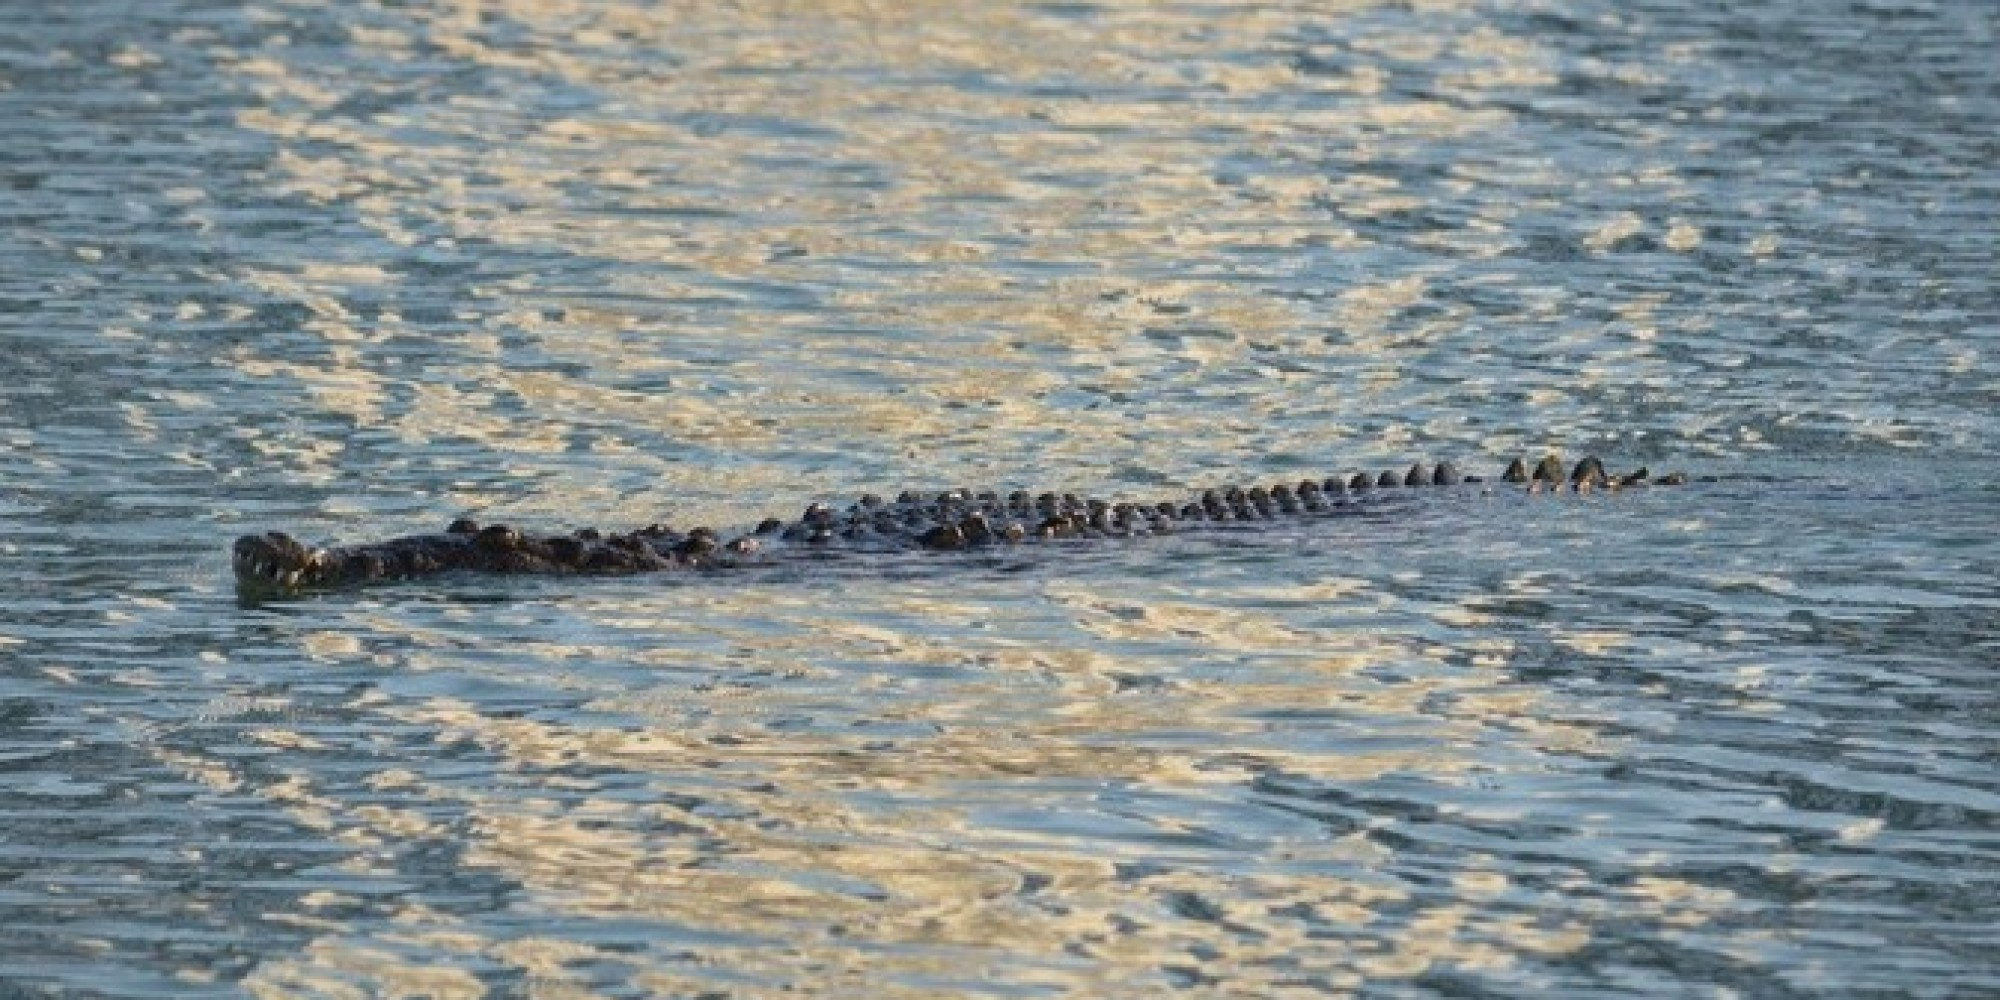 a crocodile was spotted in miami beach and here are the photos